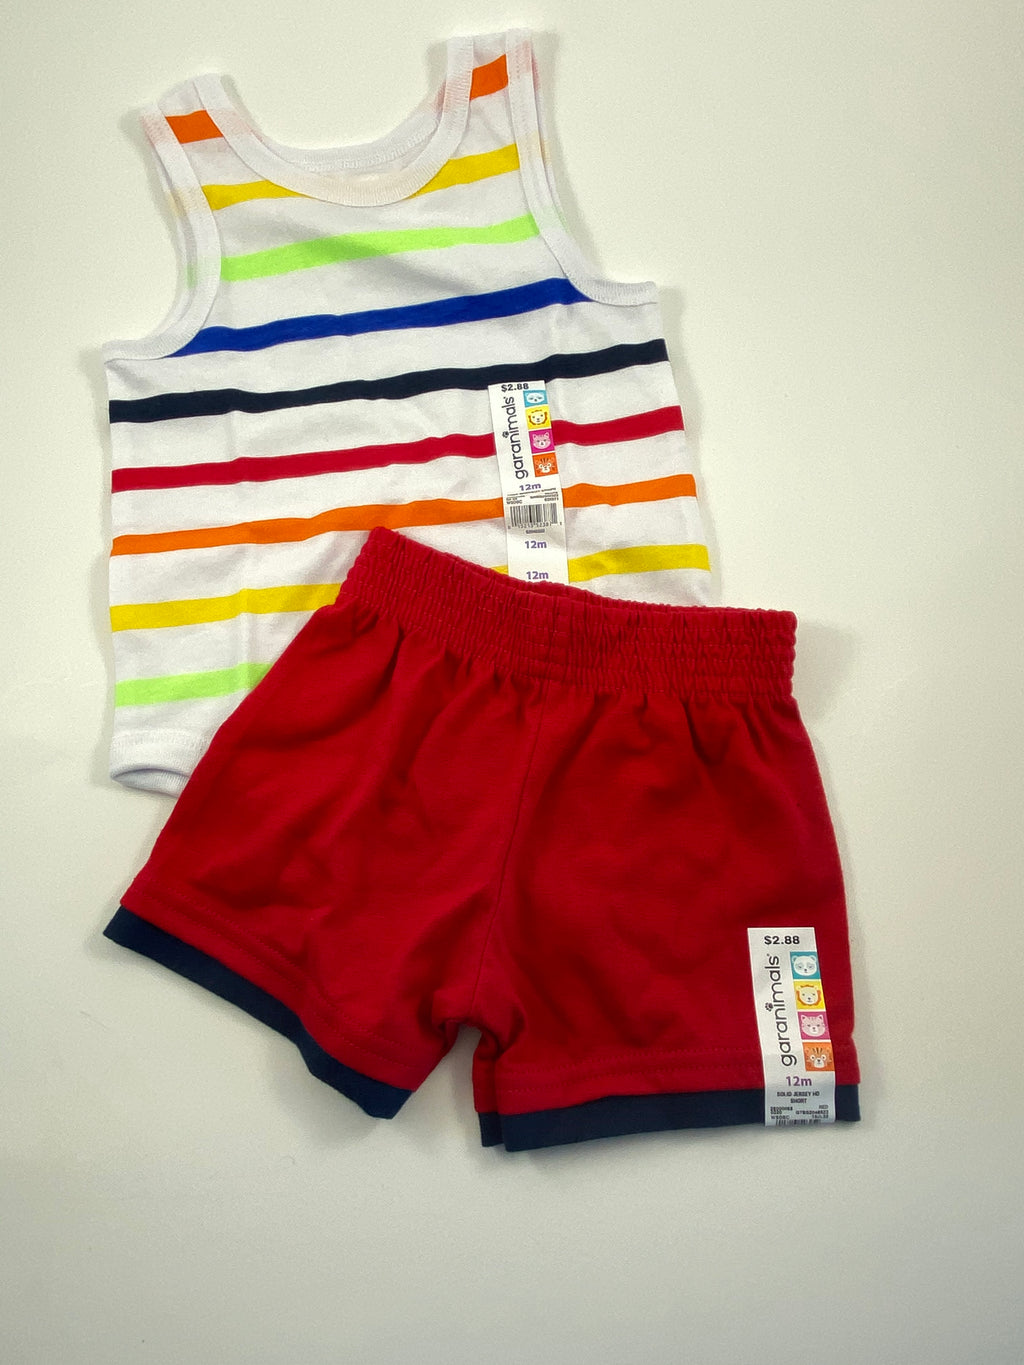 Boy's Outfit - Size 12-18mo